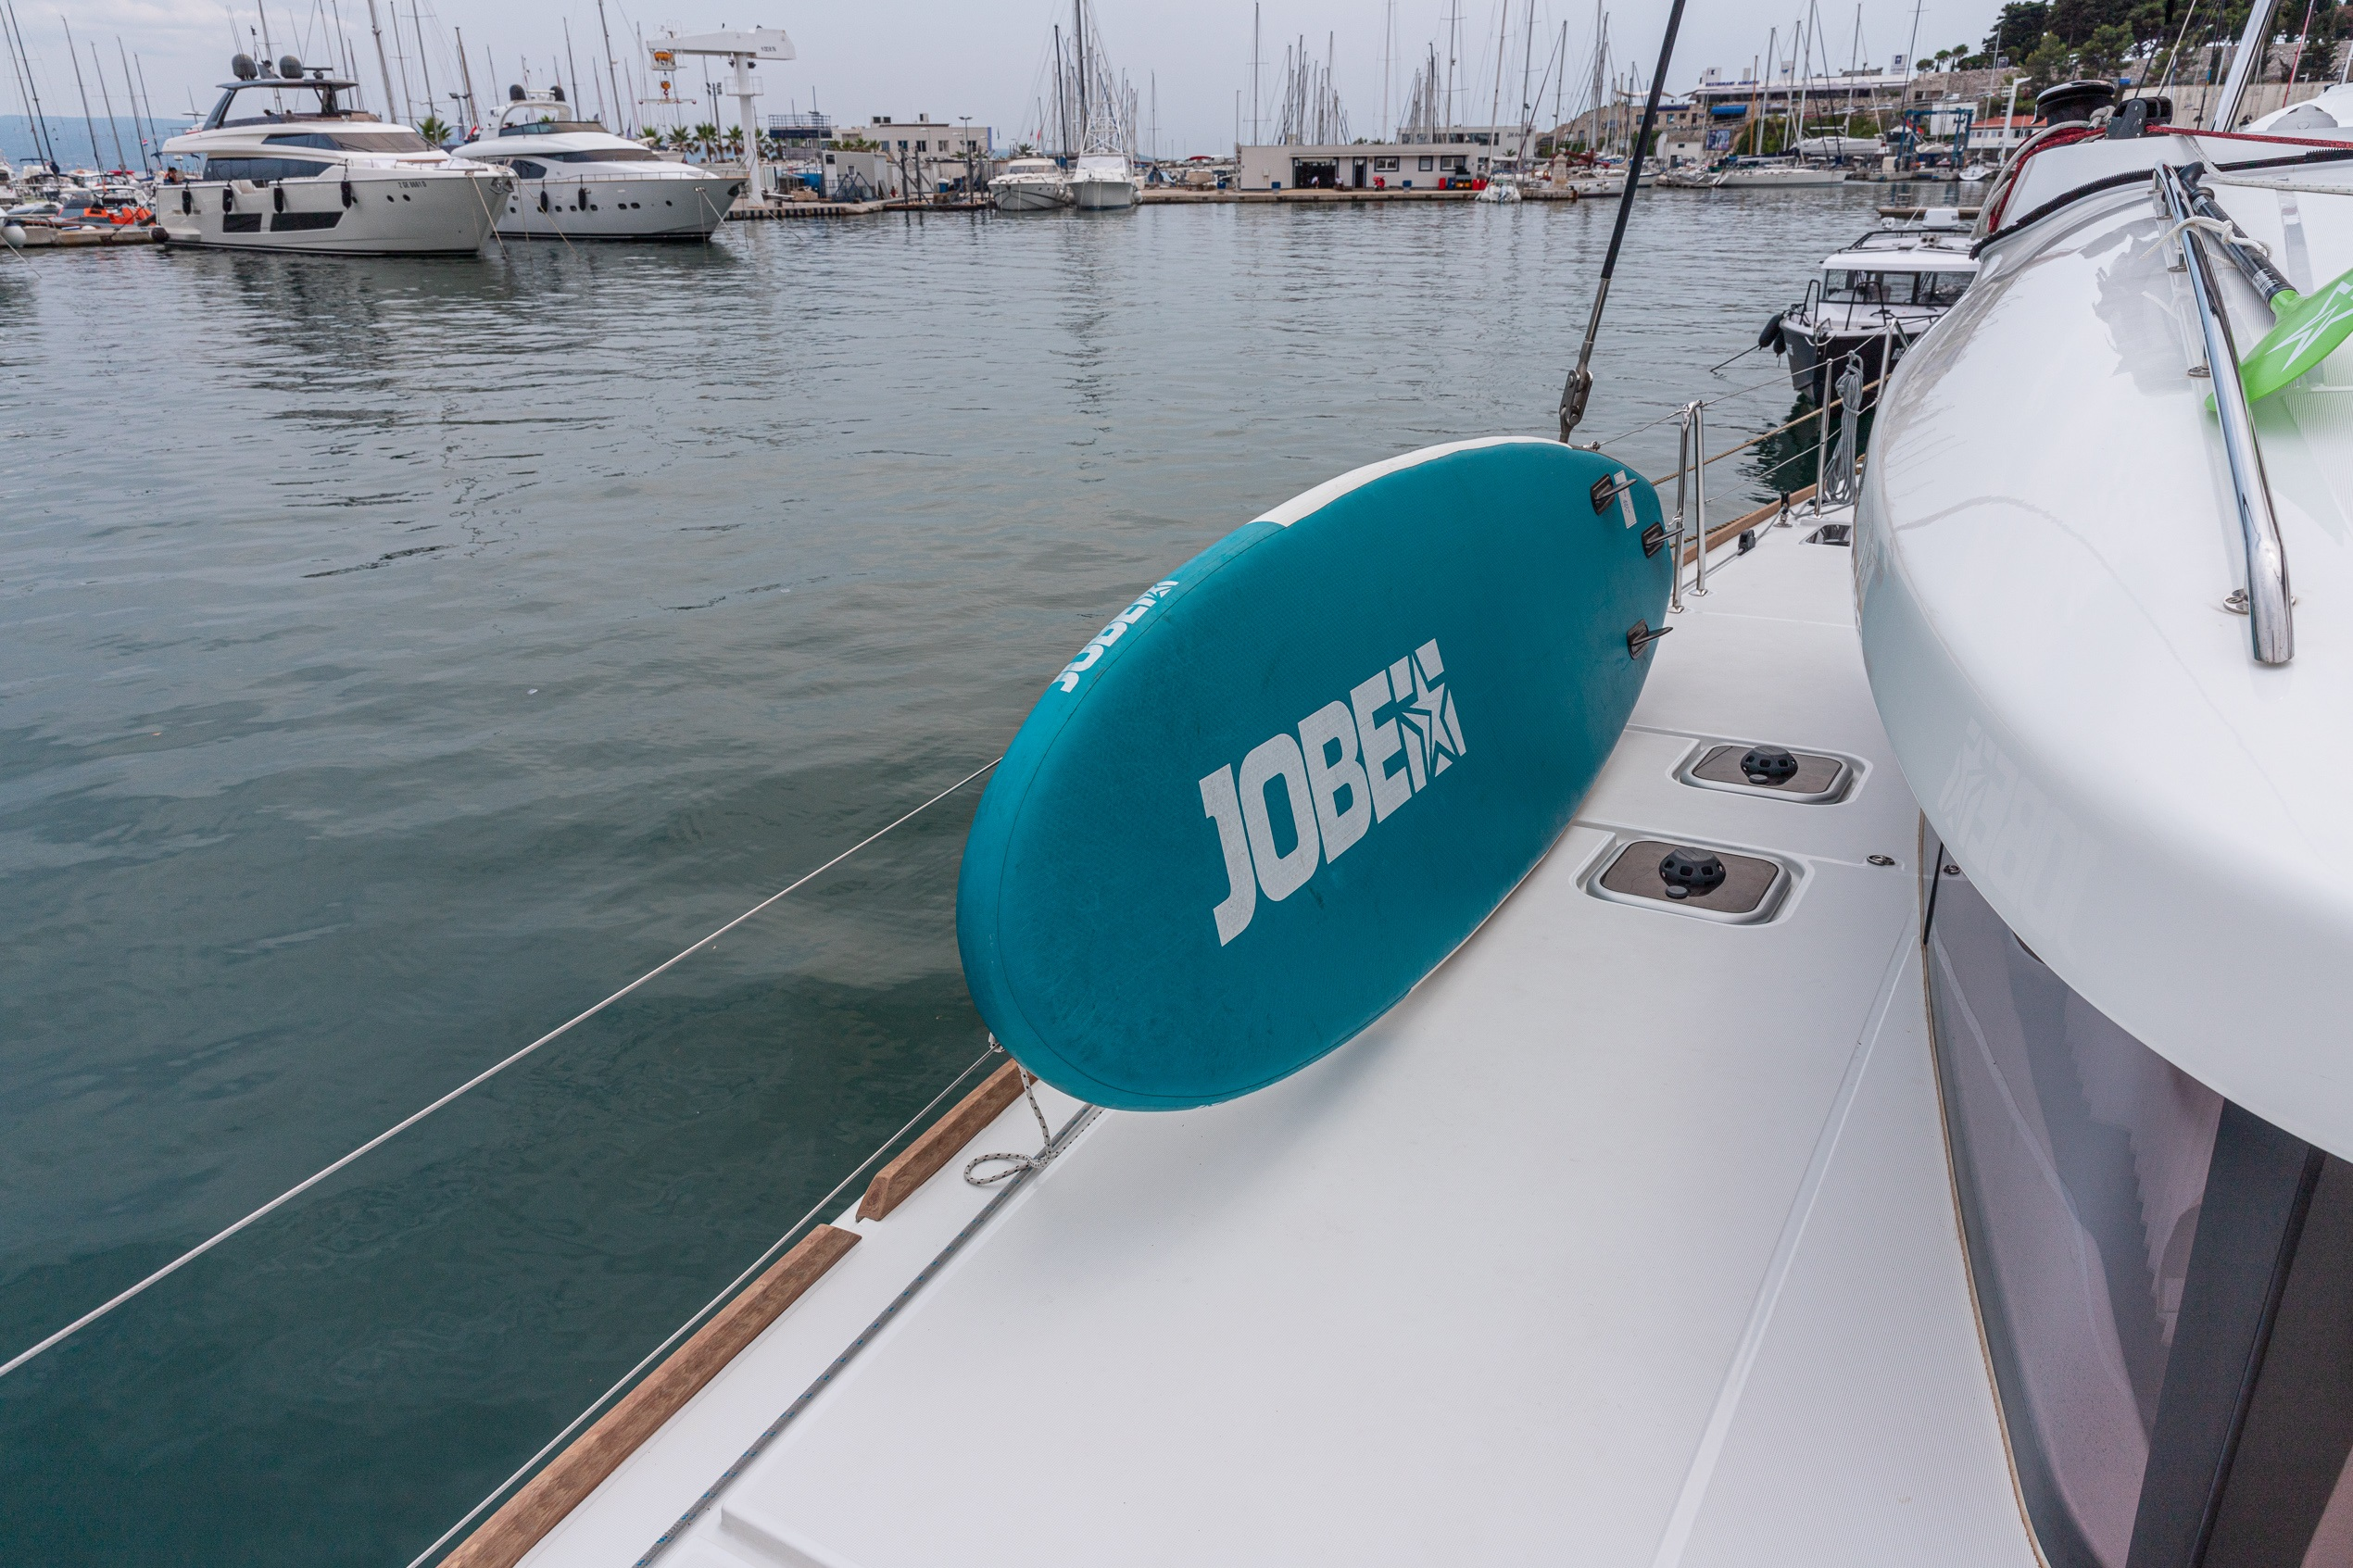 Lagoon 450 Sport (2018) equipped with generator, A (MOBY DICK)  - 1